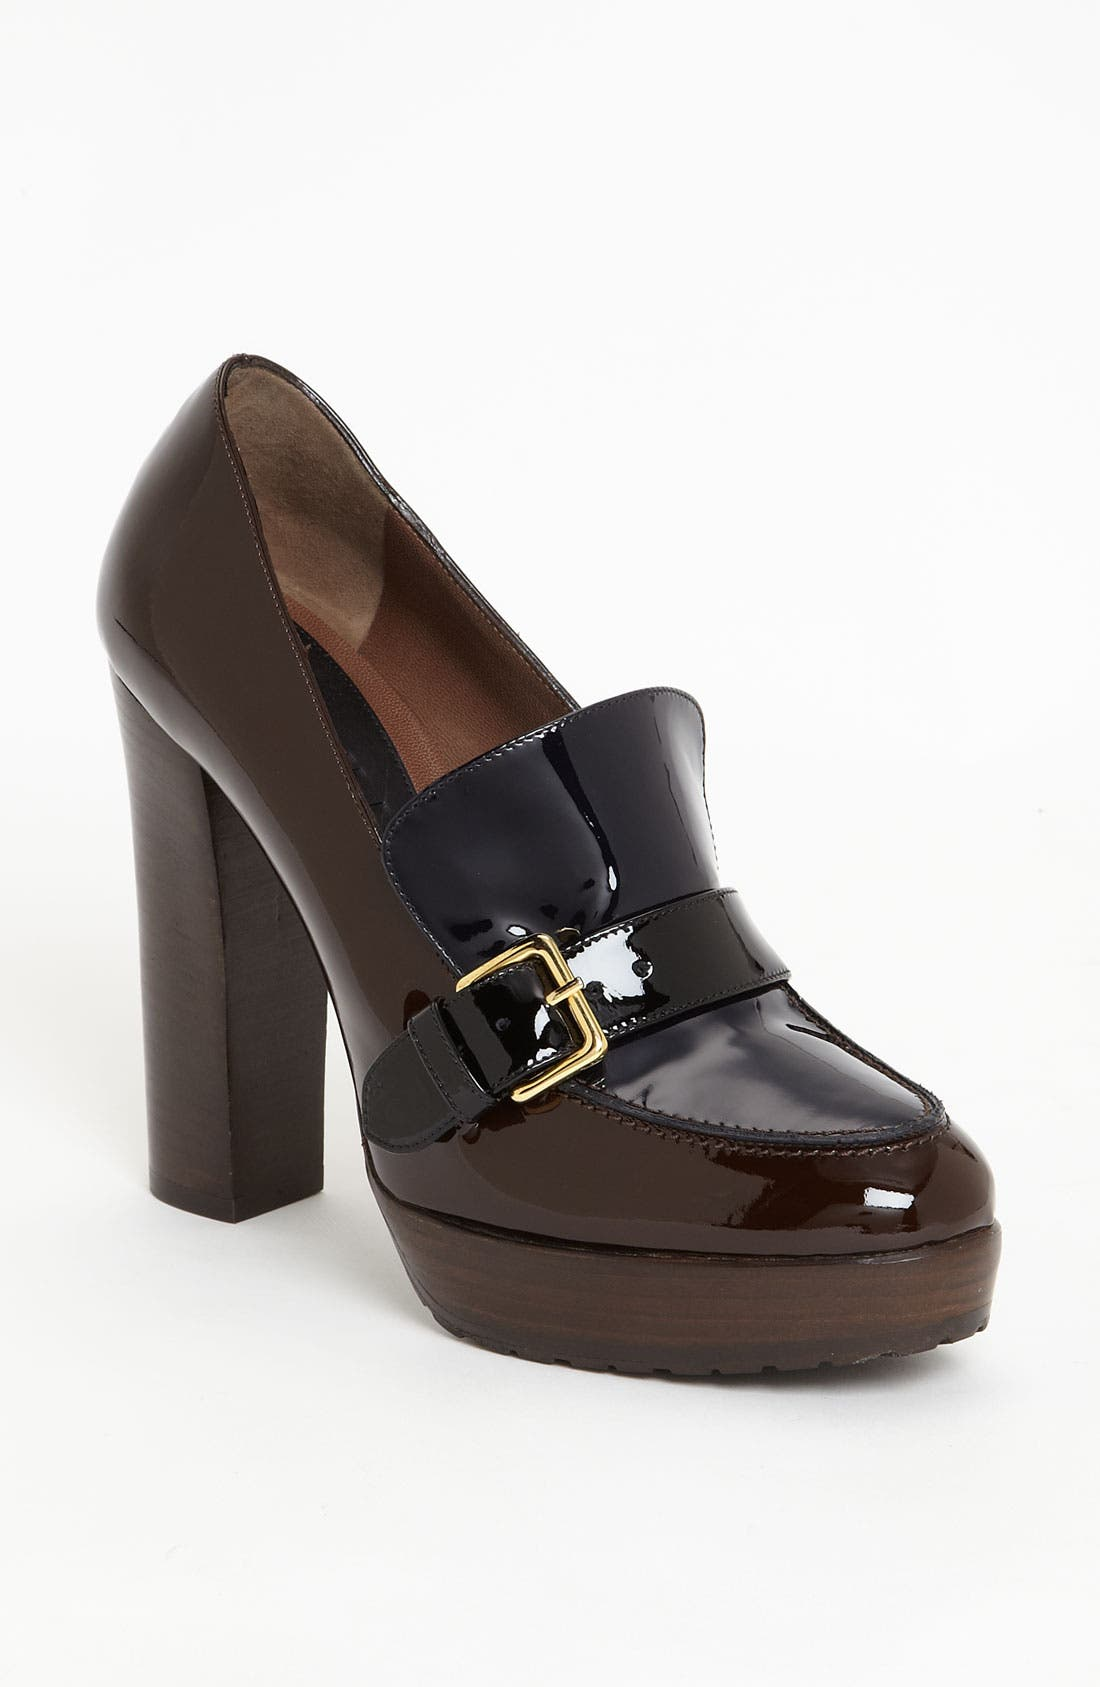 Alternate Image 1 Selected - Marni Buckle Loafer Pump